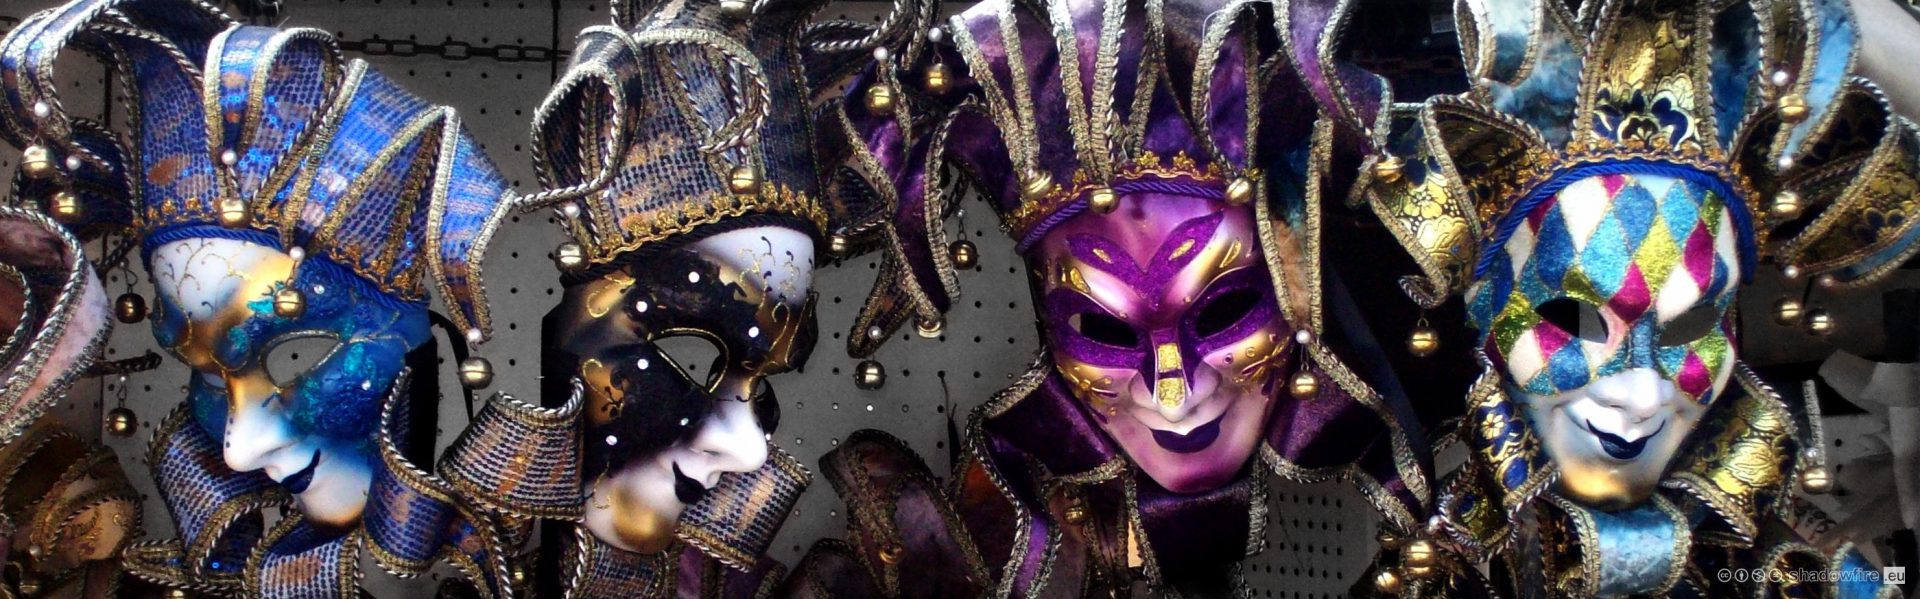 Italy, Venice, San Marco, carnival mask